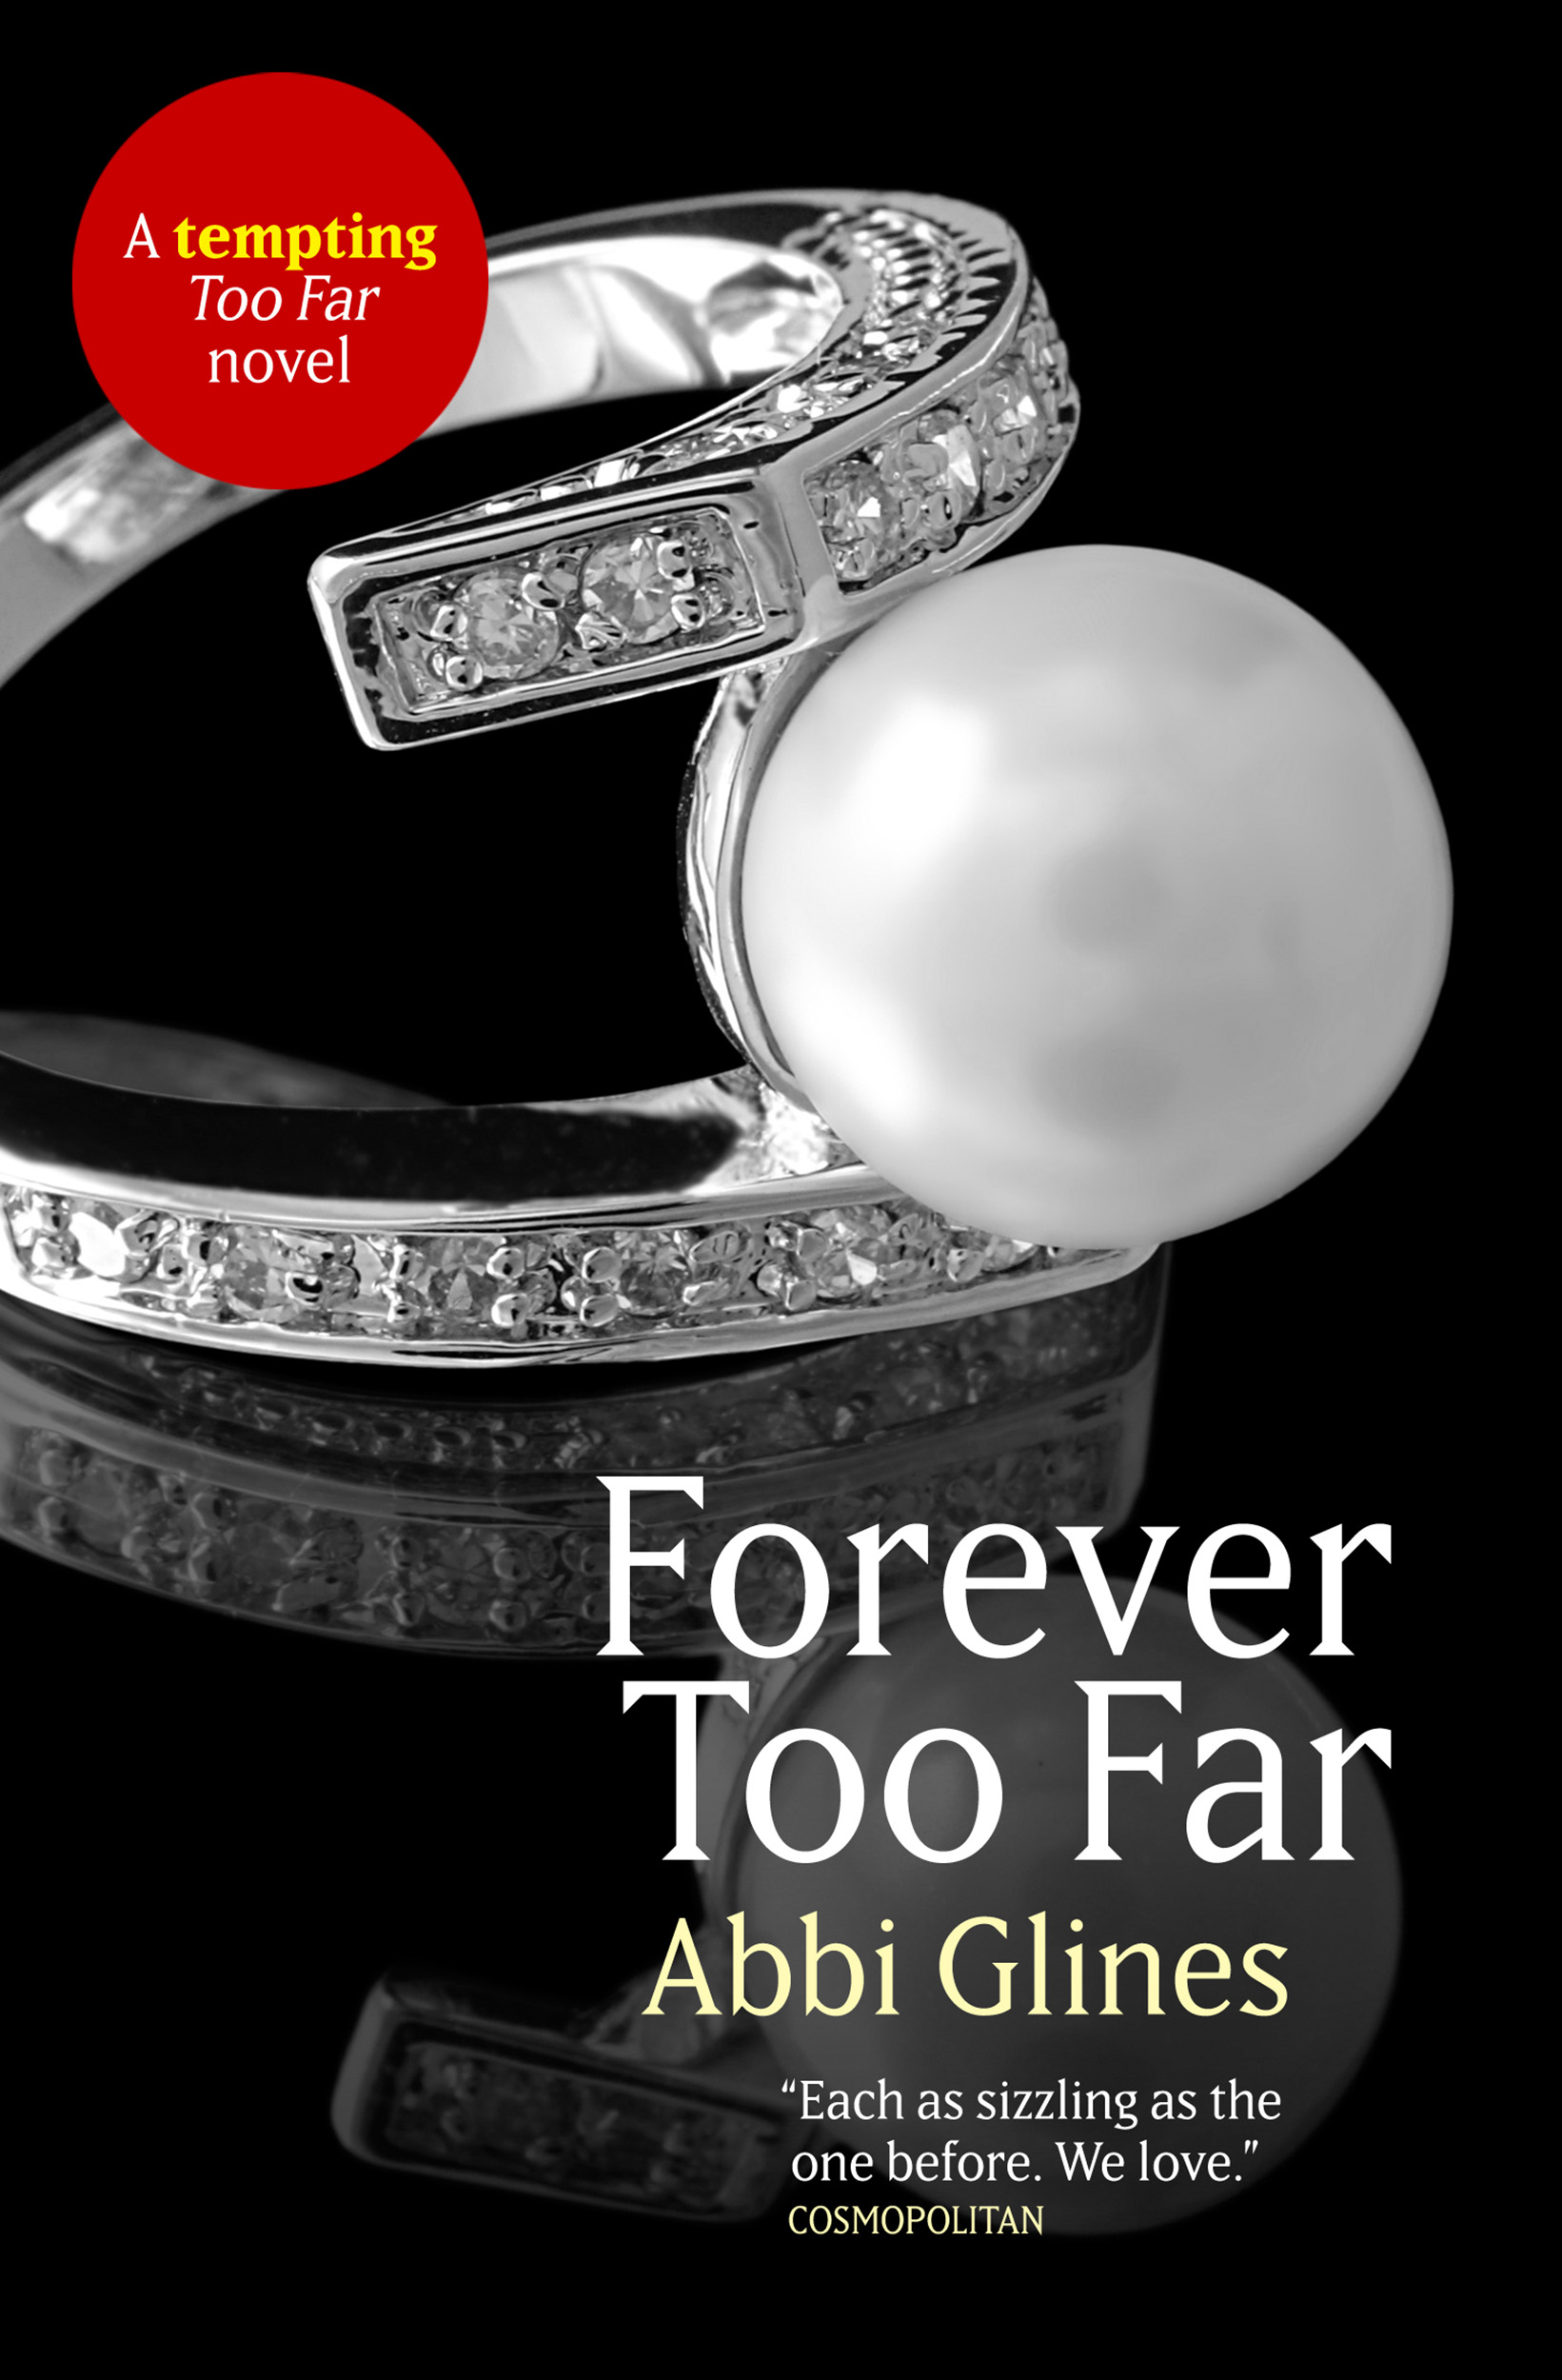 Forever too far book by abbi glines official publisher page book cover image jpg forever too far fandeluxe Choice Image